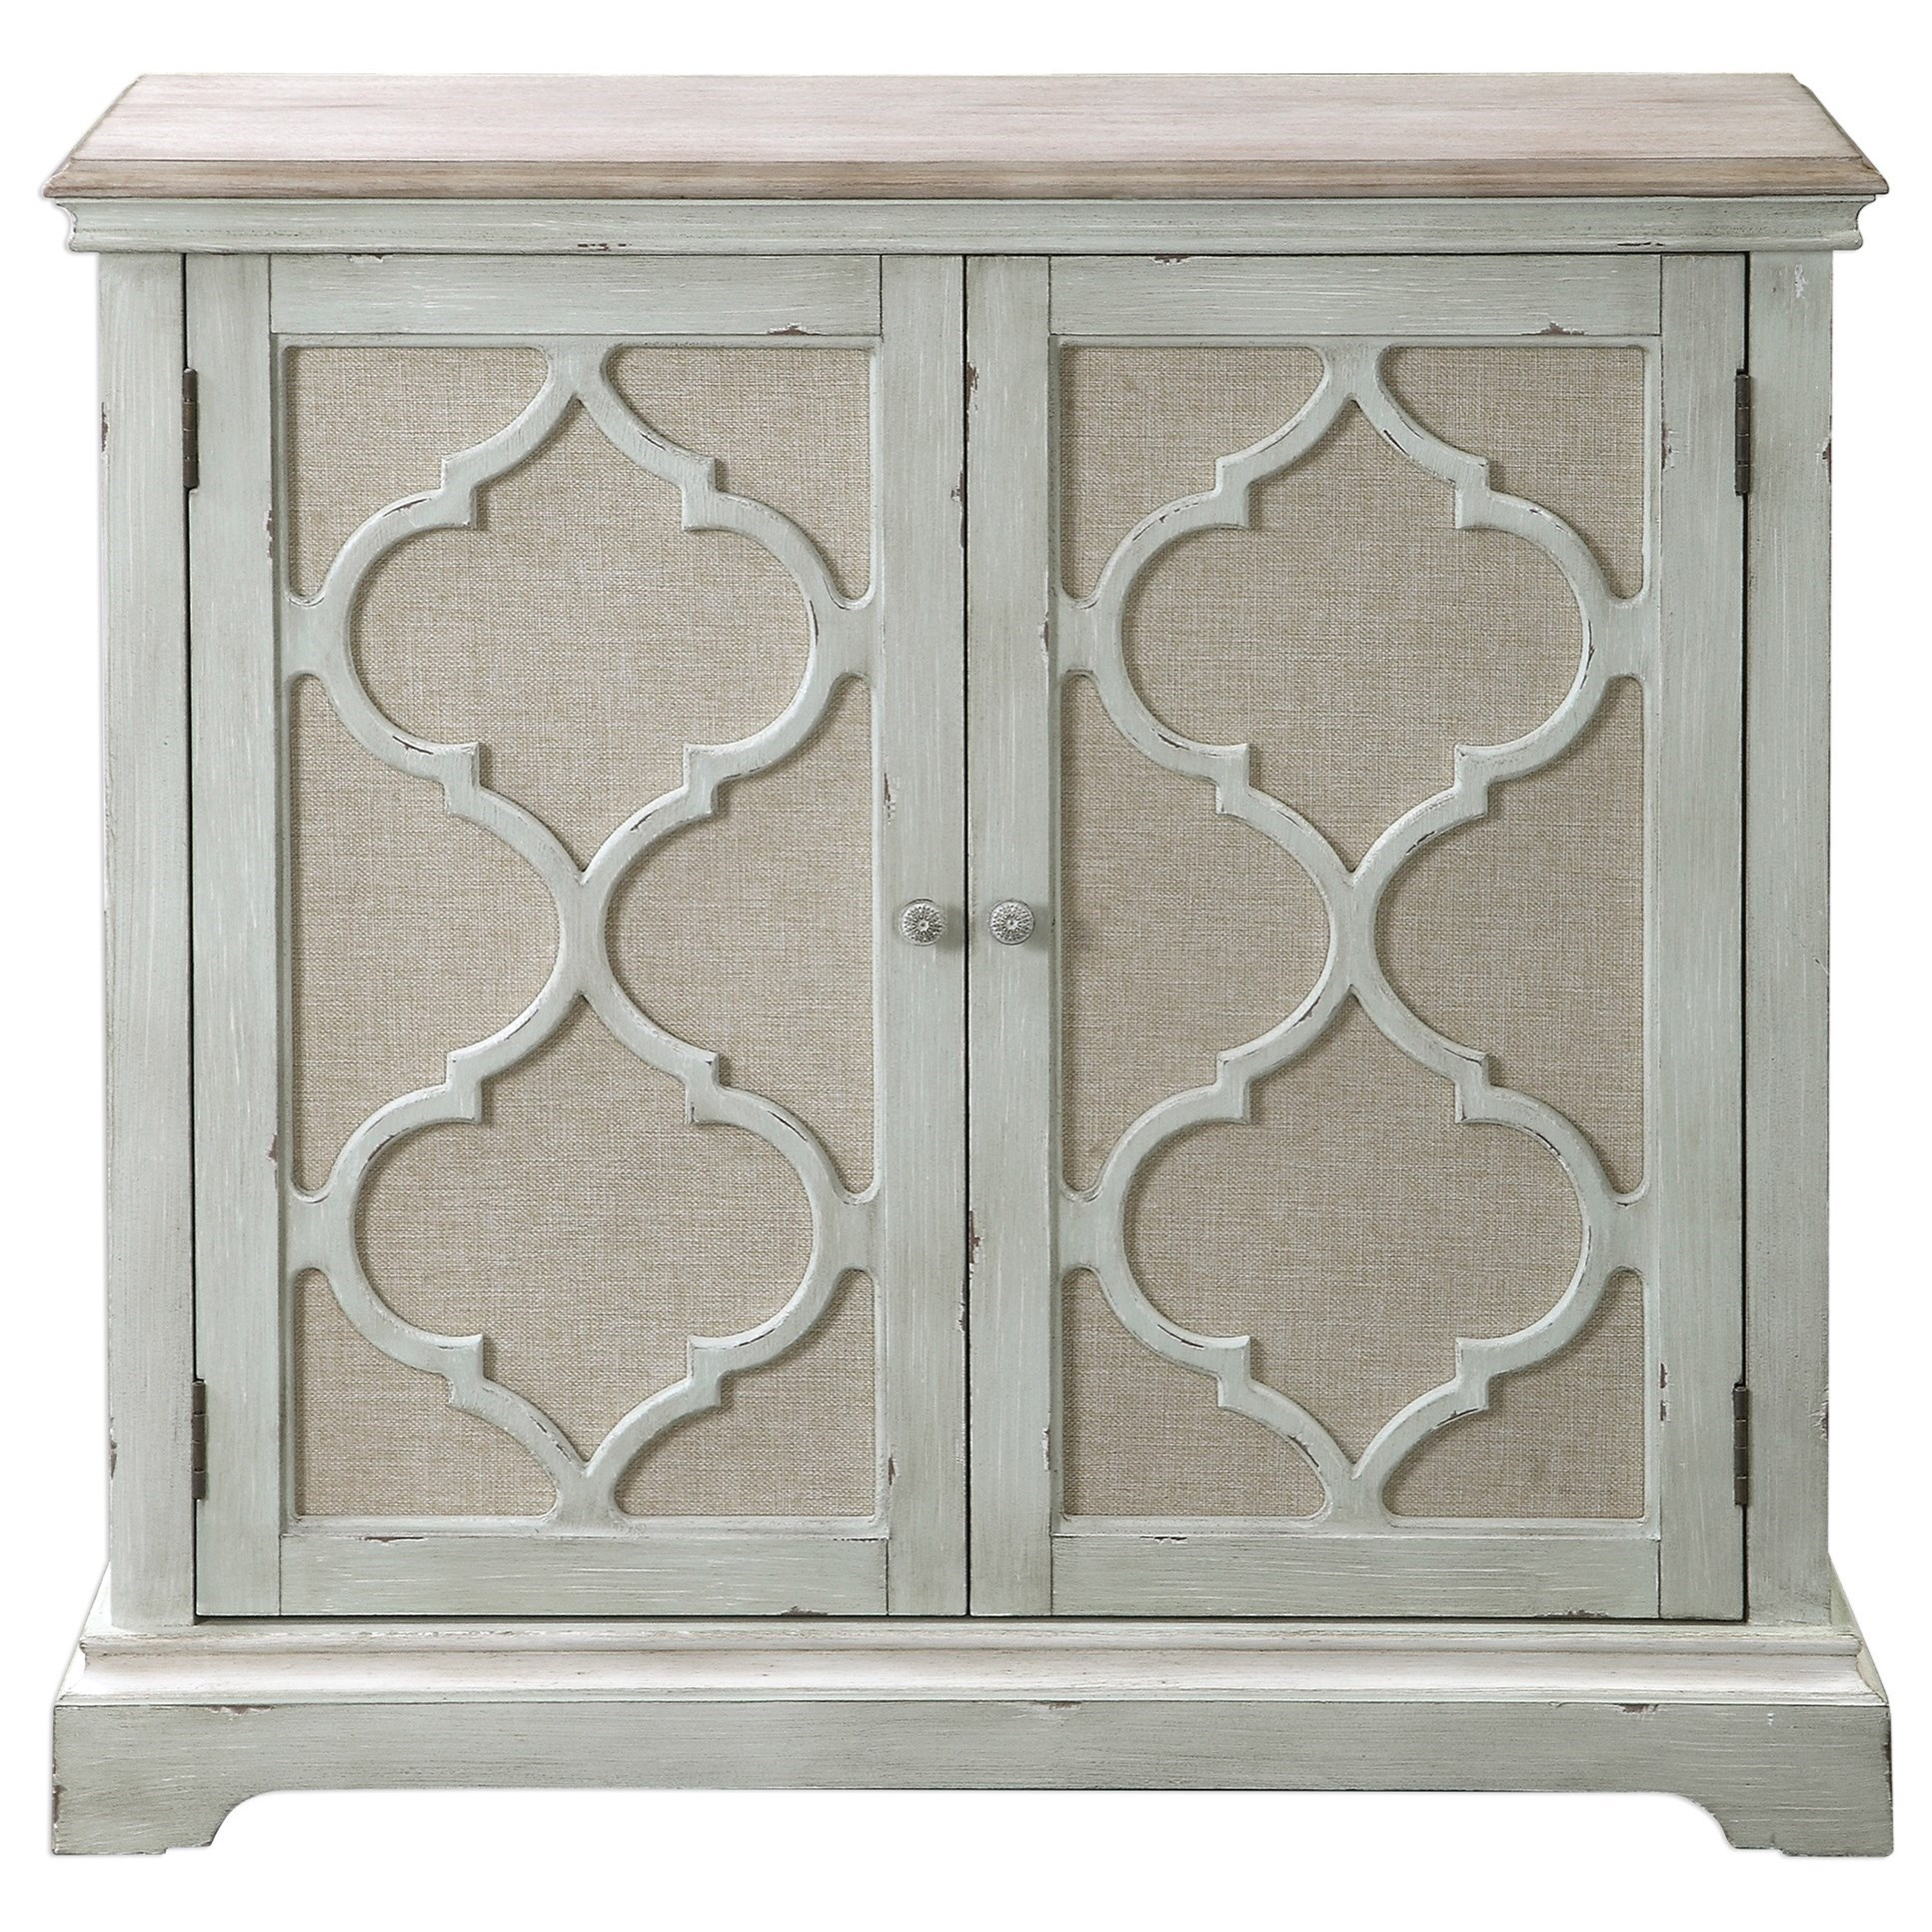 Accent Furniture - Chests Sophie Sea Grey 2 Door Cabinet by Uttermost at Reid's Furniture